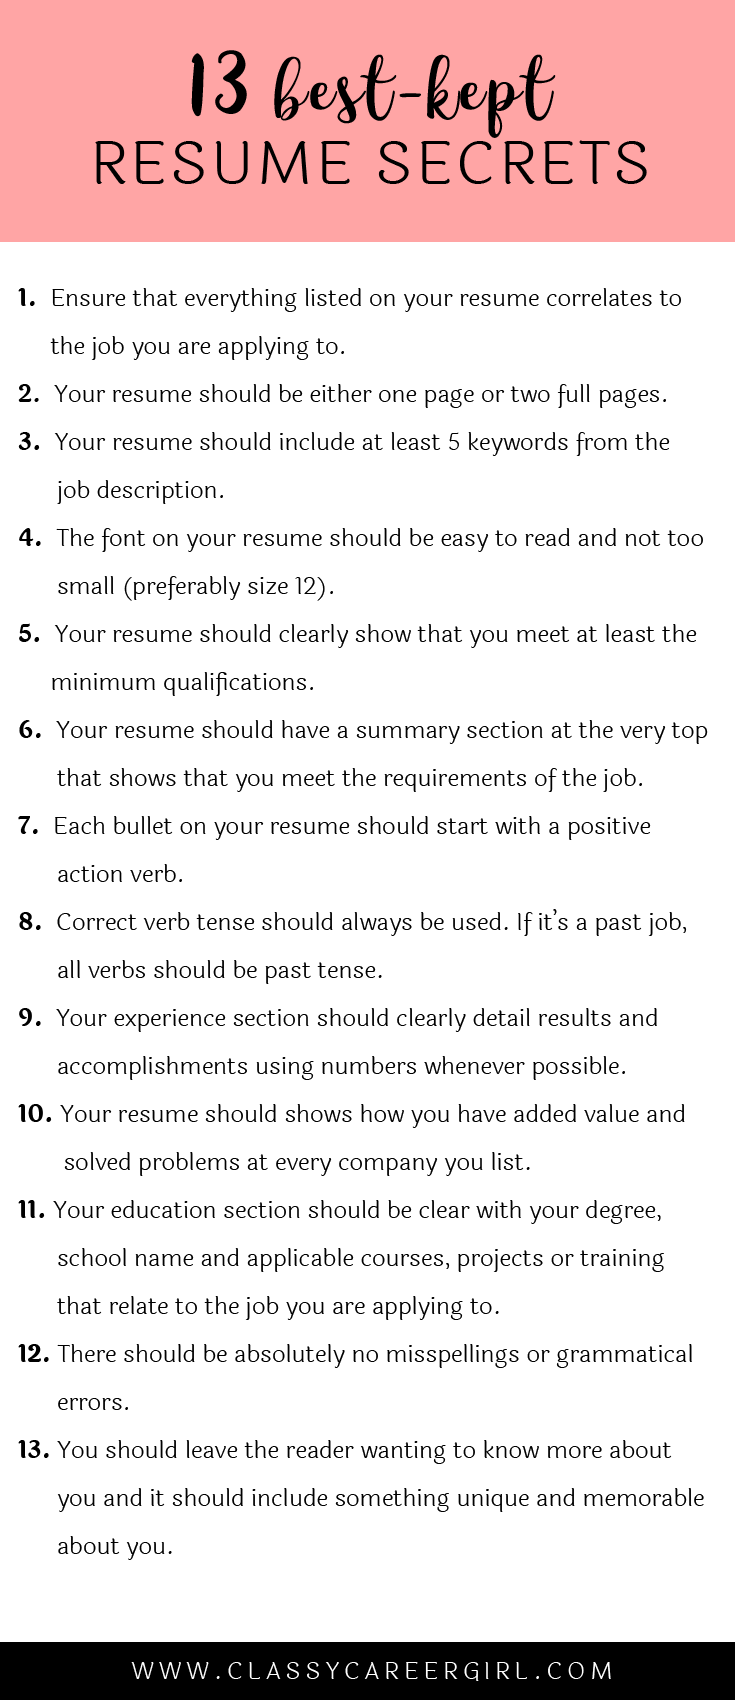 Some Hiring Managers Will Toss Your Resume Out If You Donu0027t Know These 13  How Many Pages Should Your Resume Be